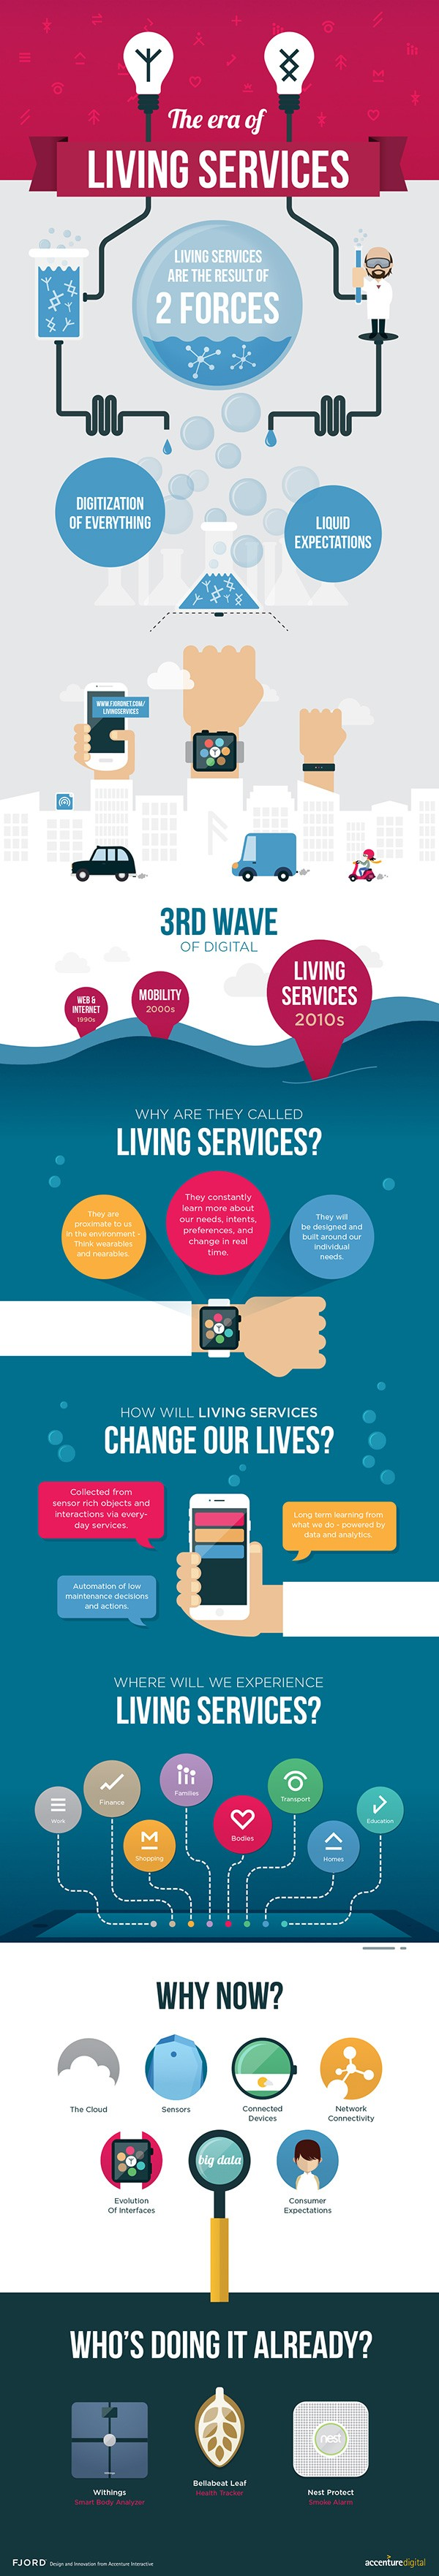 Accenture Living Services infographic